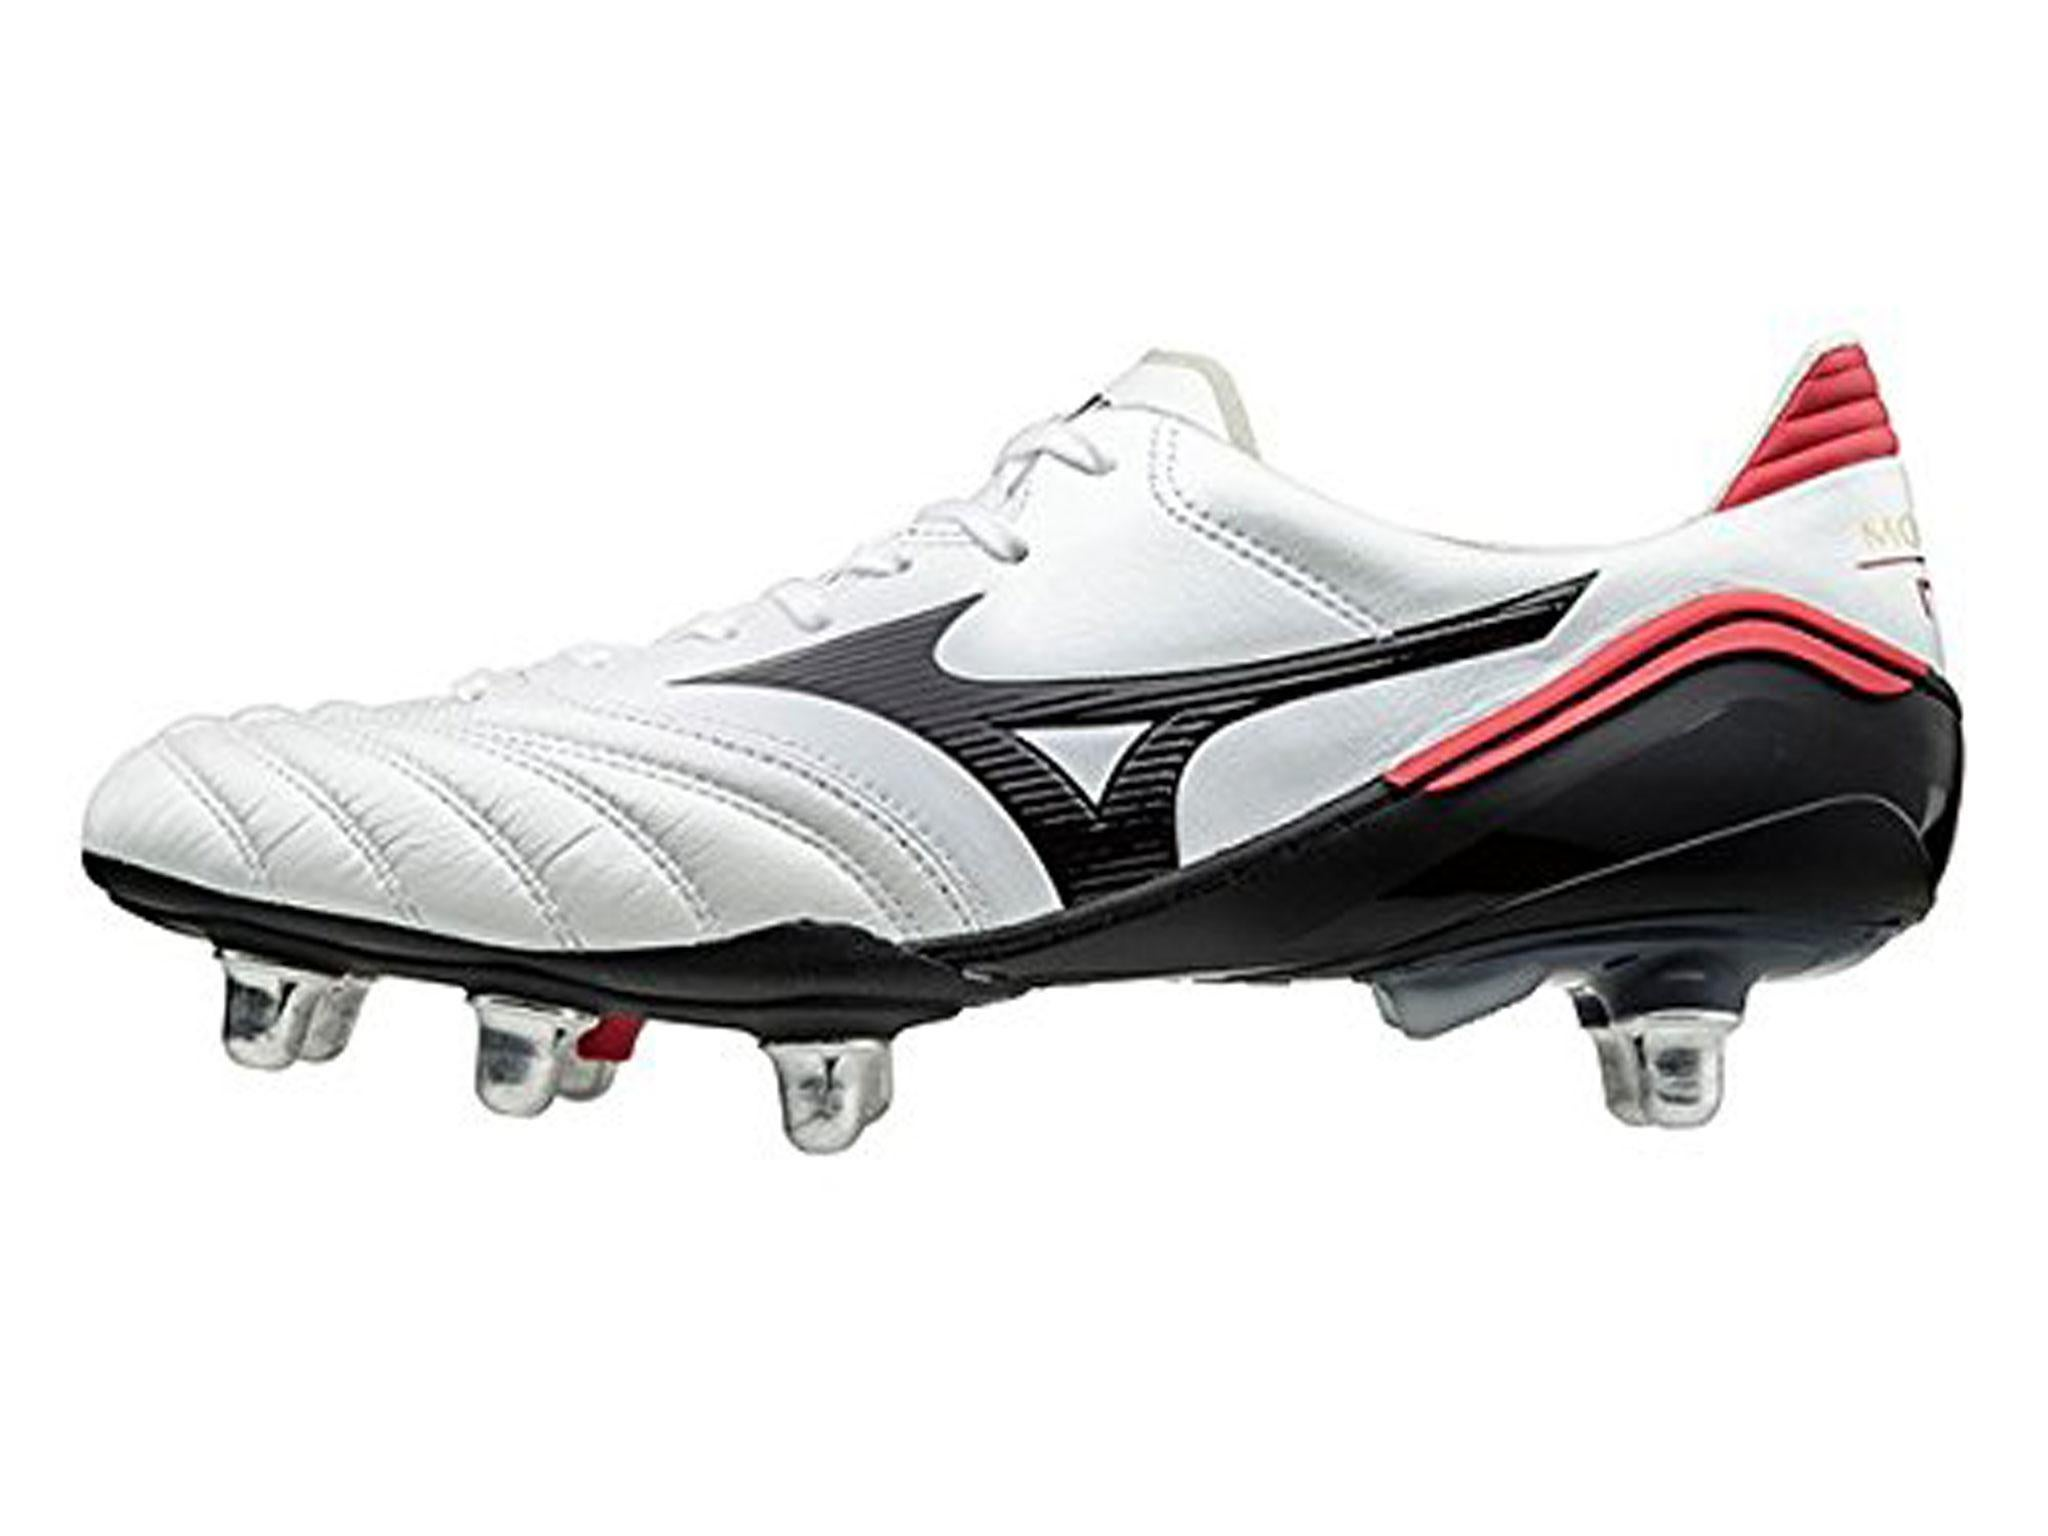 00dfa79d89 7 best rugby boots | The Independent